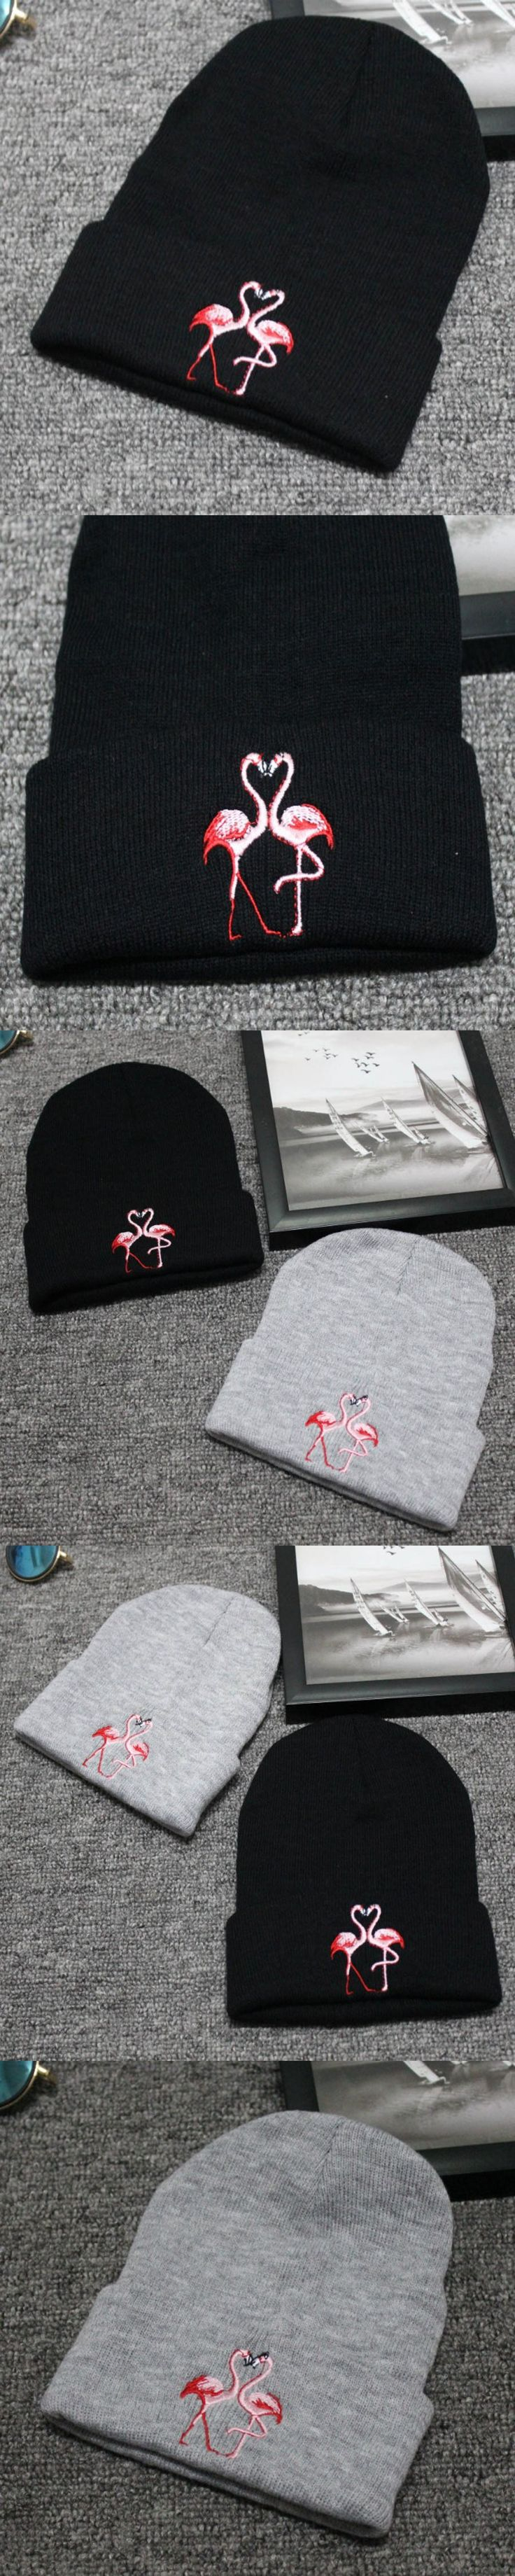 Beanie Skullies Flamingo Embroidery Knitted Winter Caps For Men and Women Ski Warm Hat